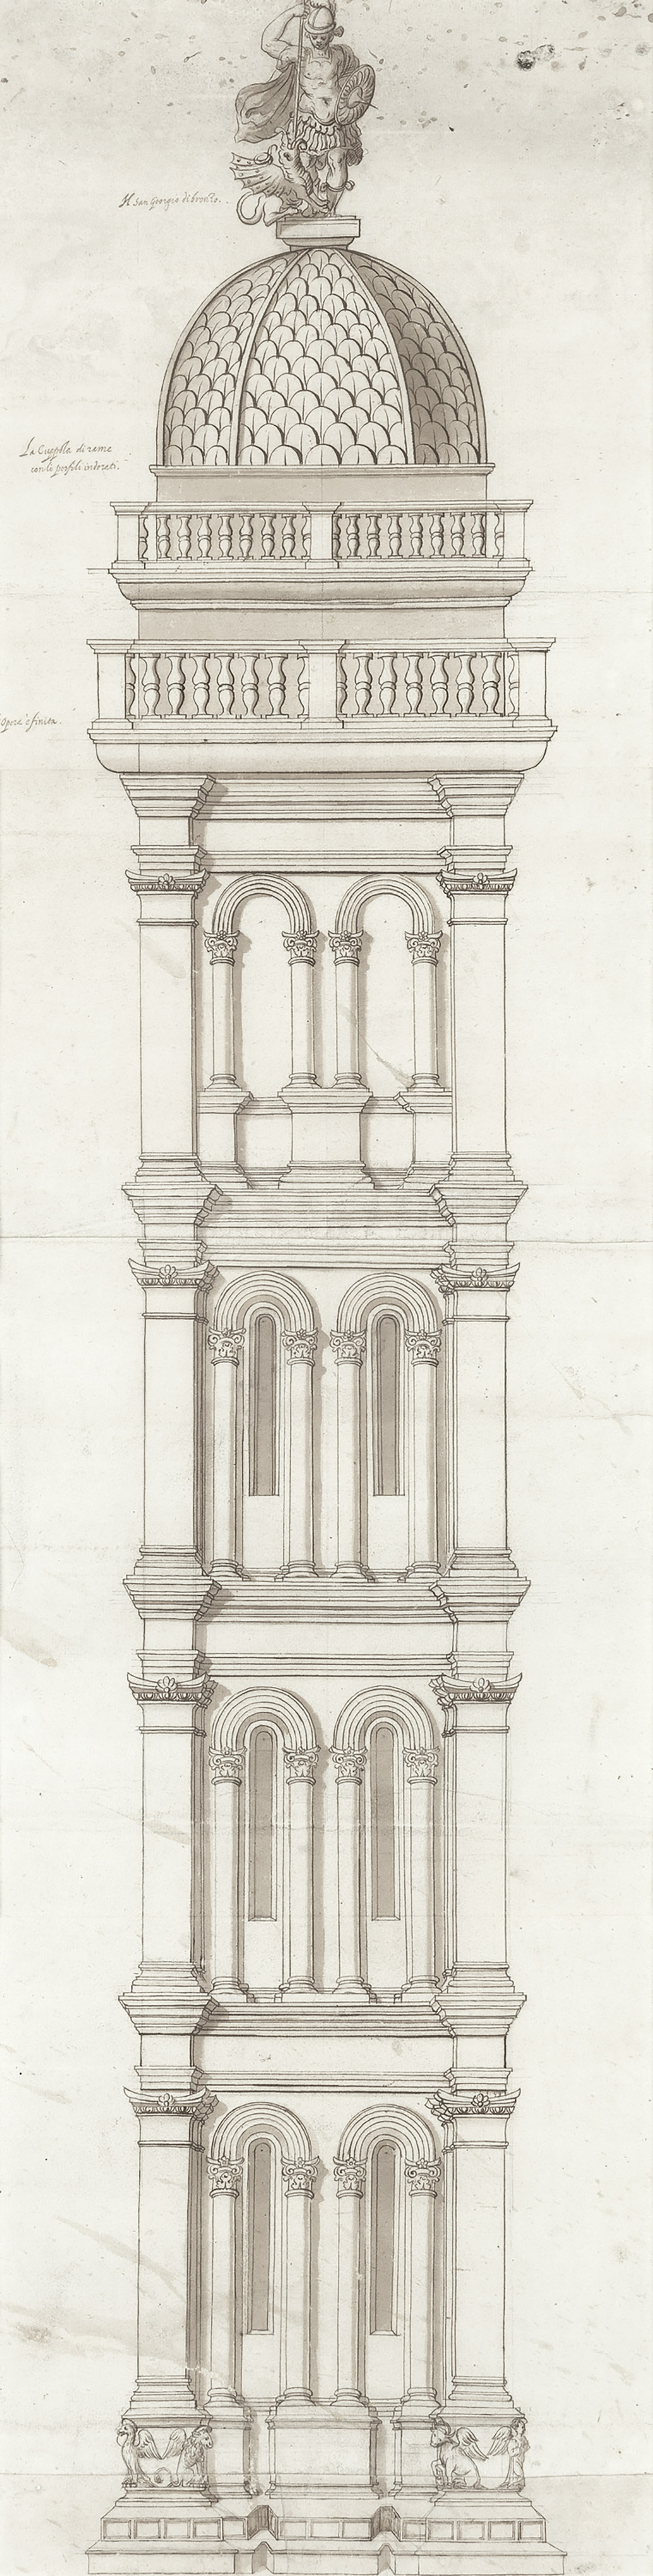 VENETIAN-SCHOOL-17TH-CENTURY-Architectural-Study-of-a-Tower-